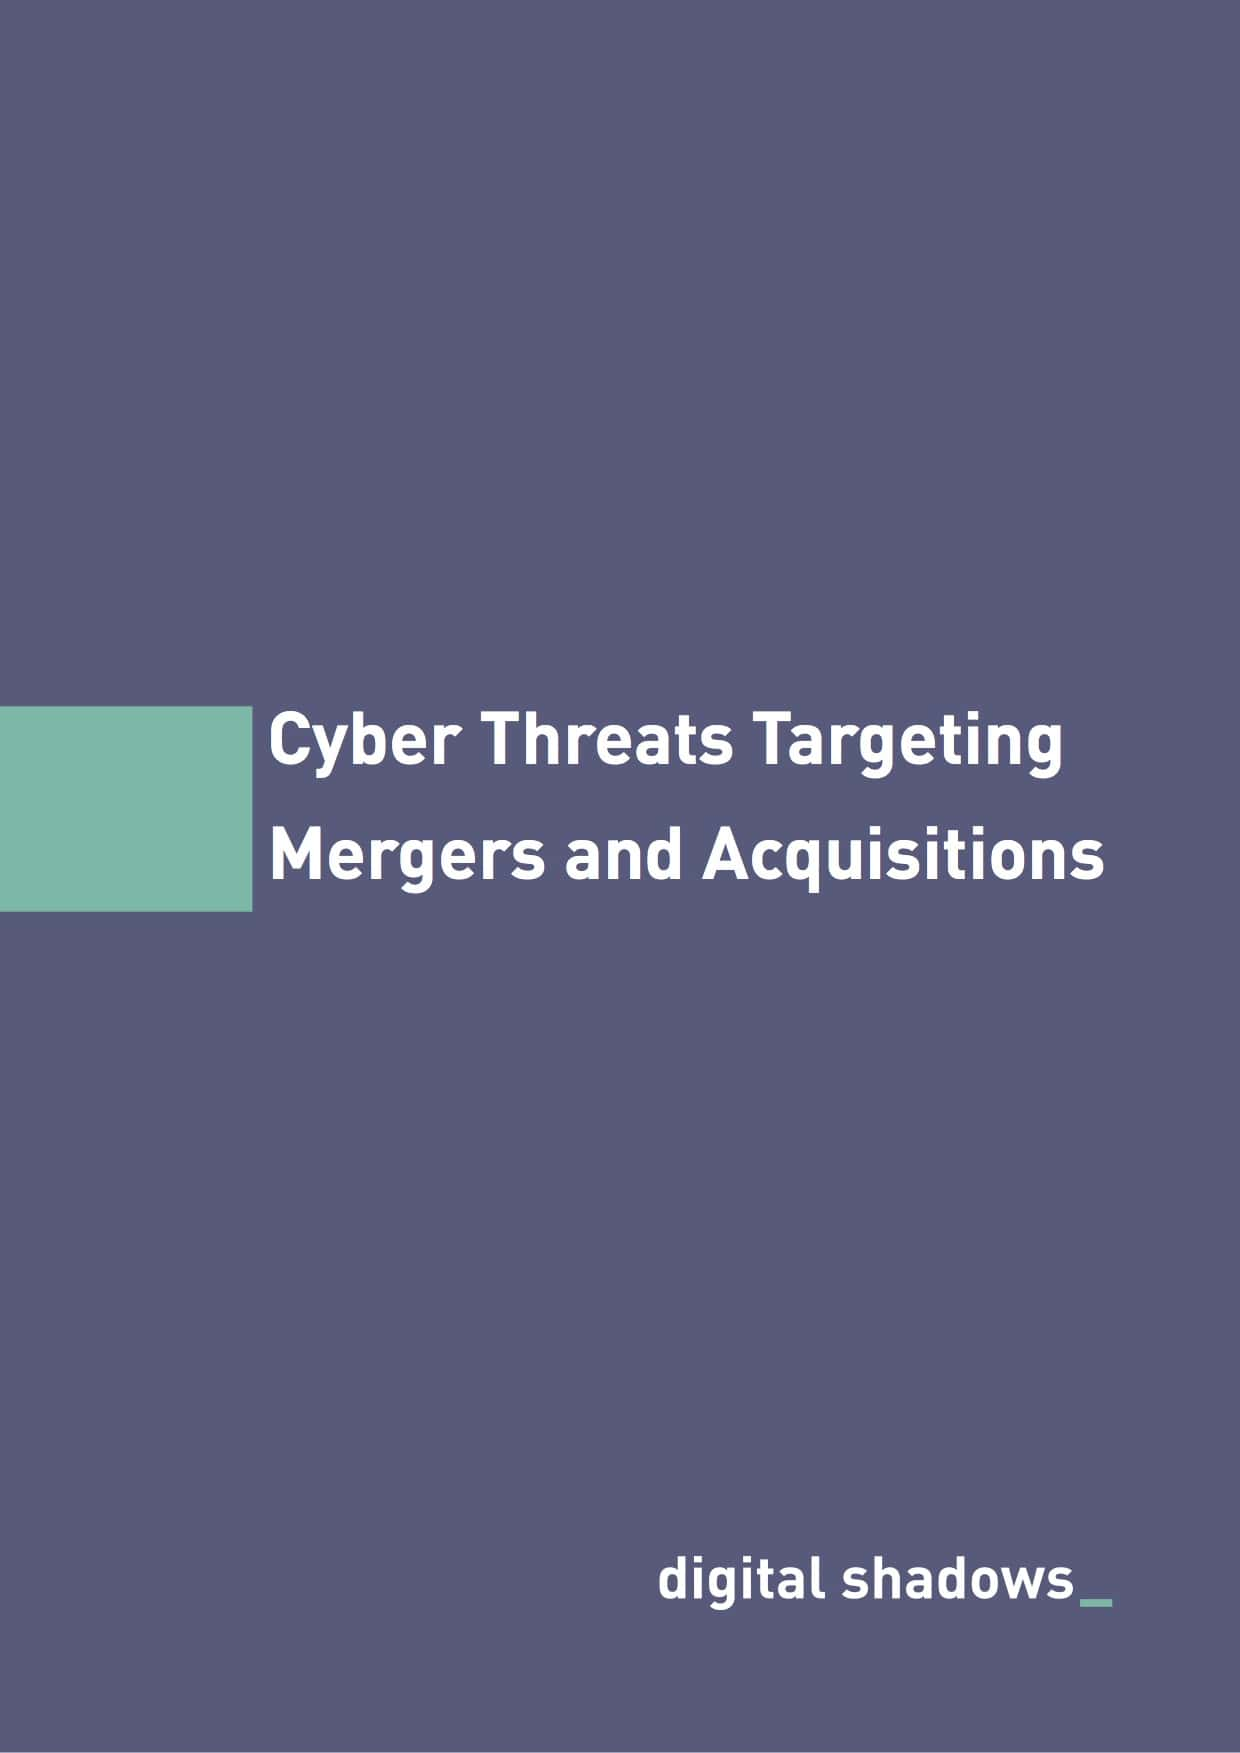 Cyber Threats Targeting Mergers and Acquisitions cover image min